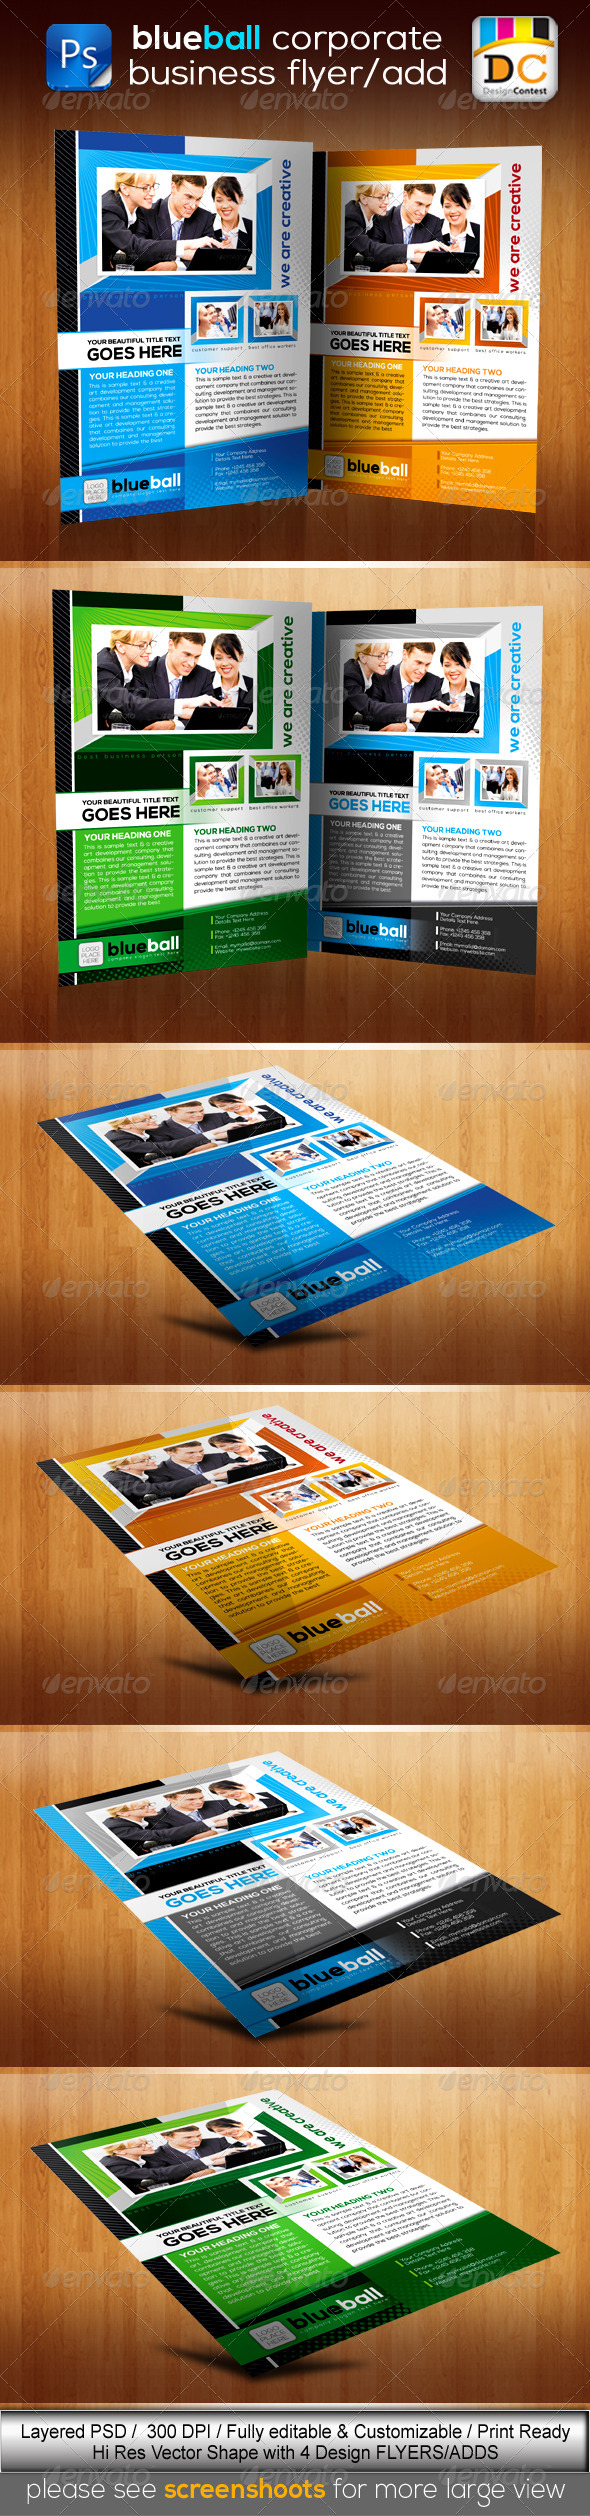 GraphicRiver BlueBall Corporate Business Flyers Adds 3719073